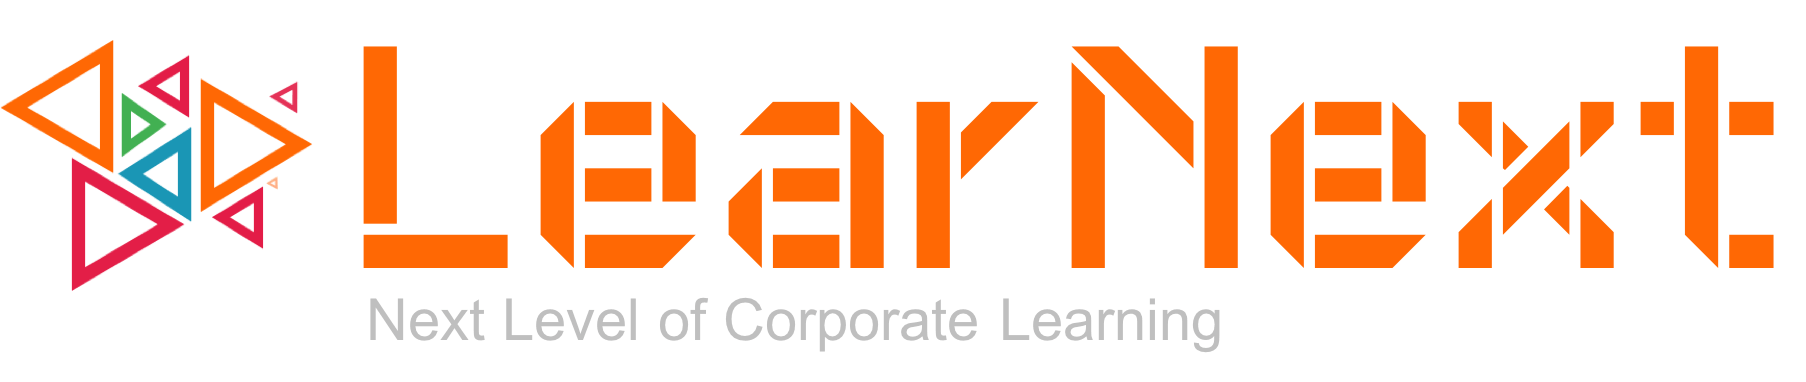 LearNext 2019 - Next Level of Corporate Learning